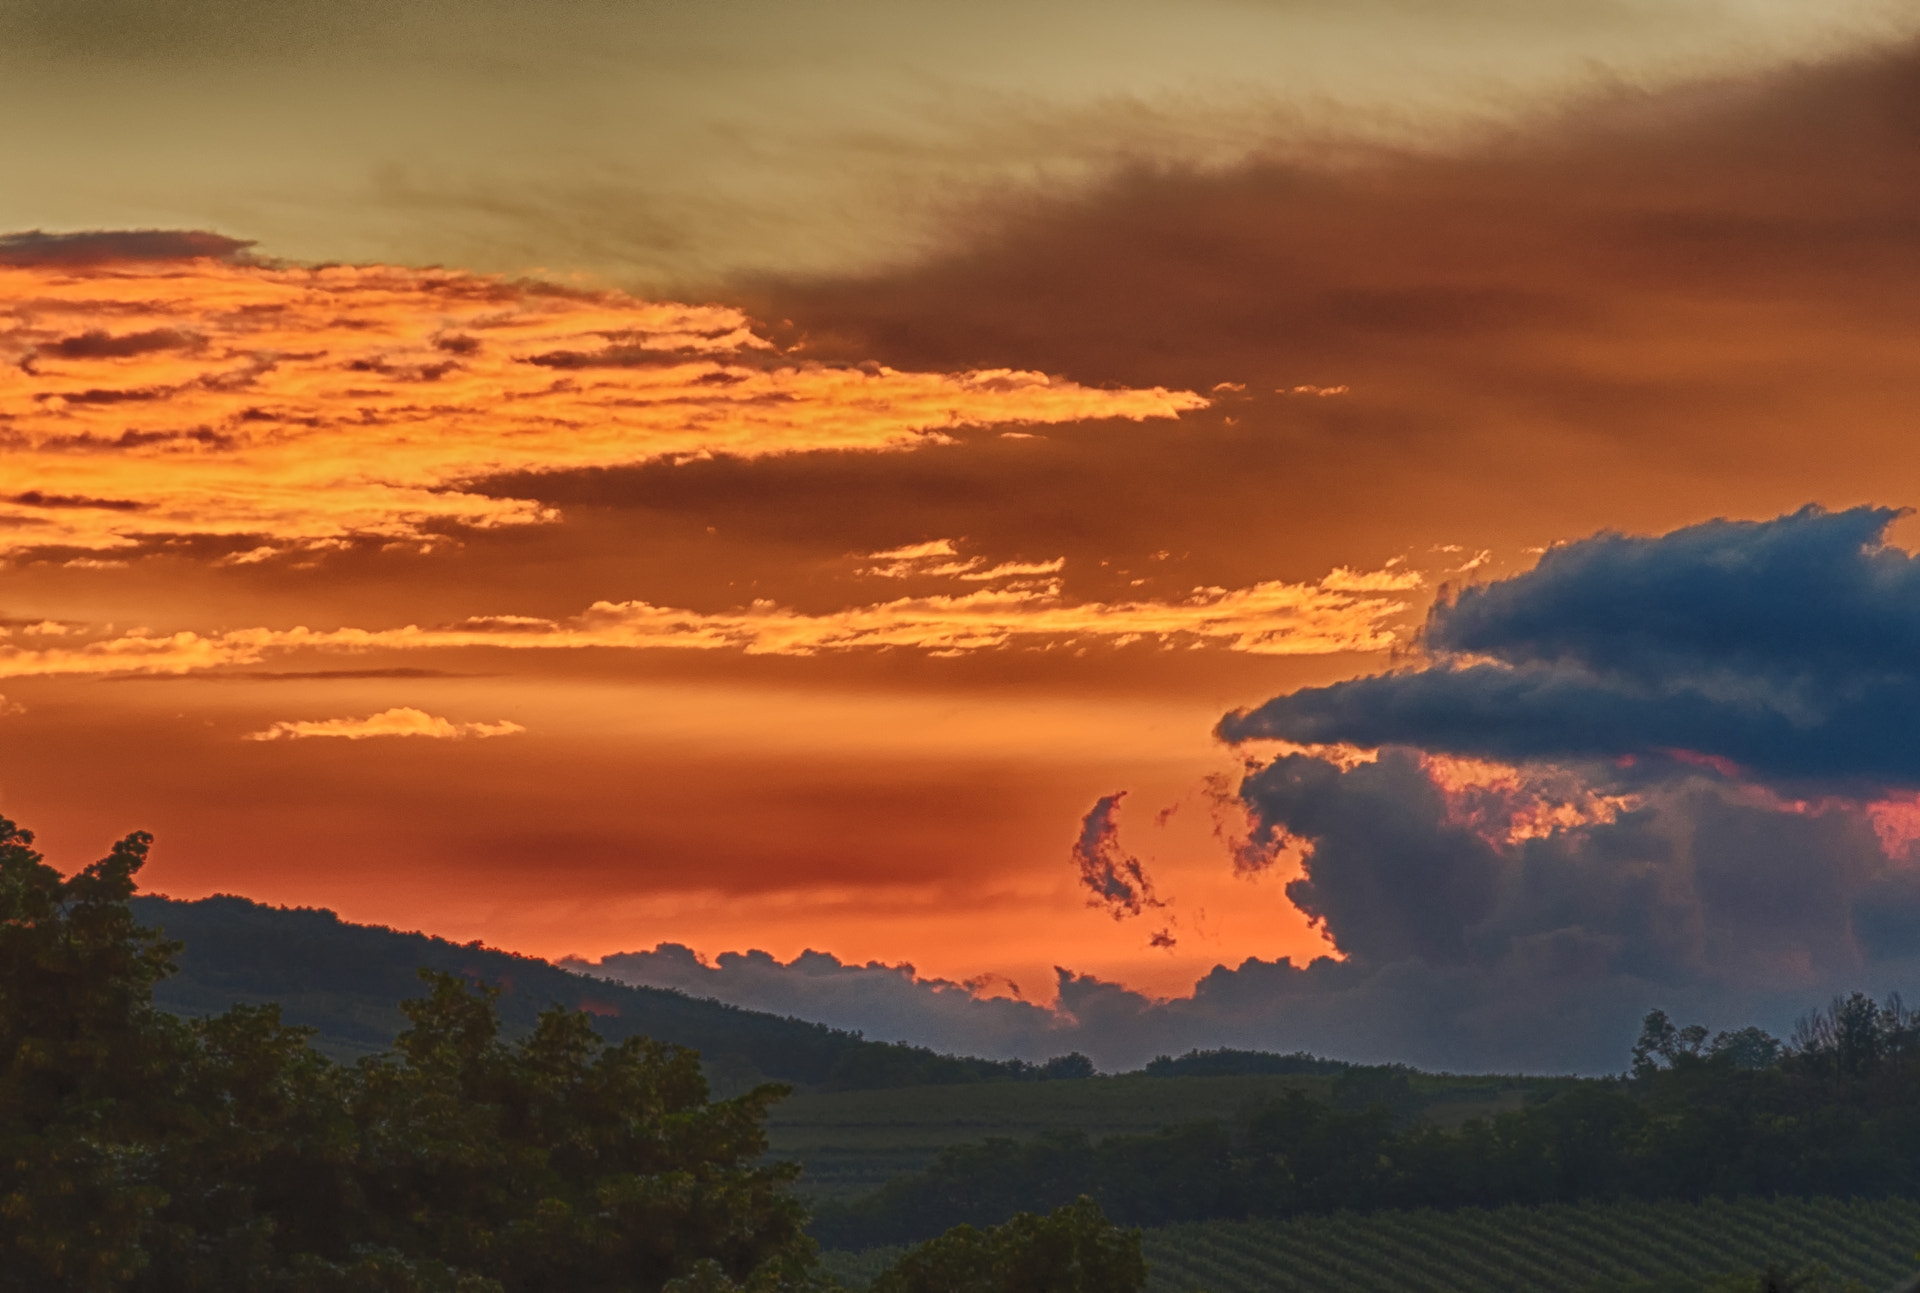 Photograph Sunset over Mailberg by Ernst Gamauf on 500px